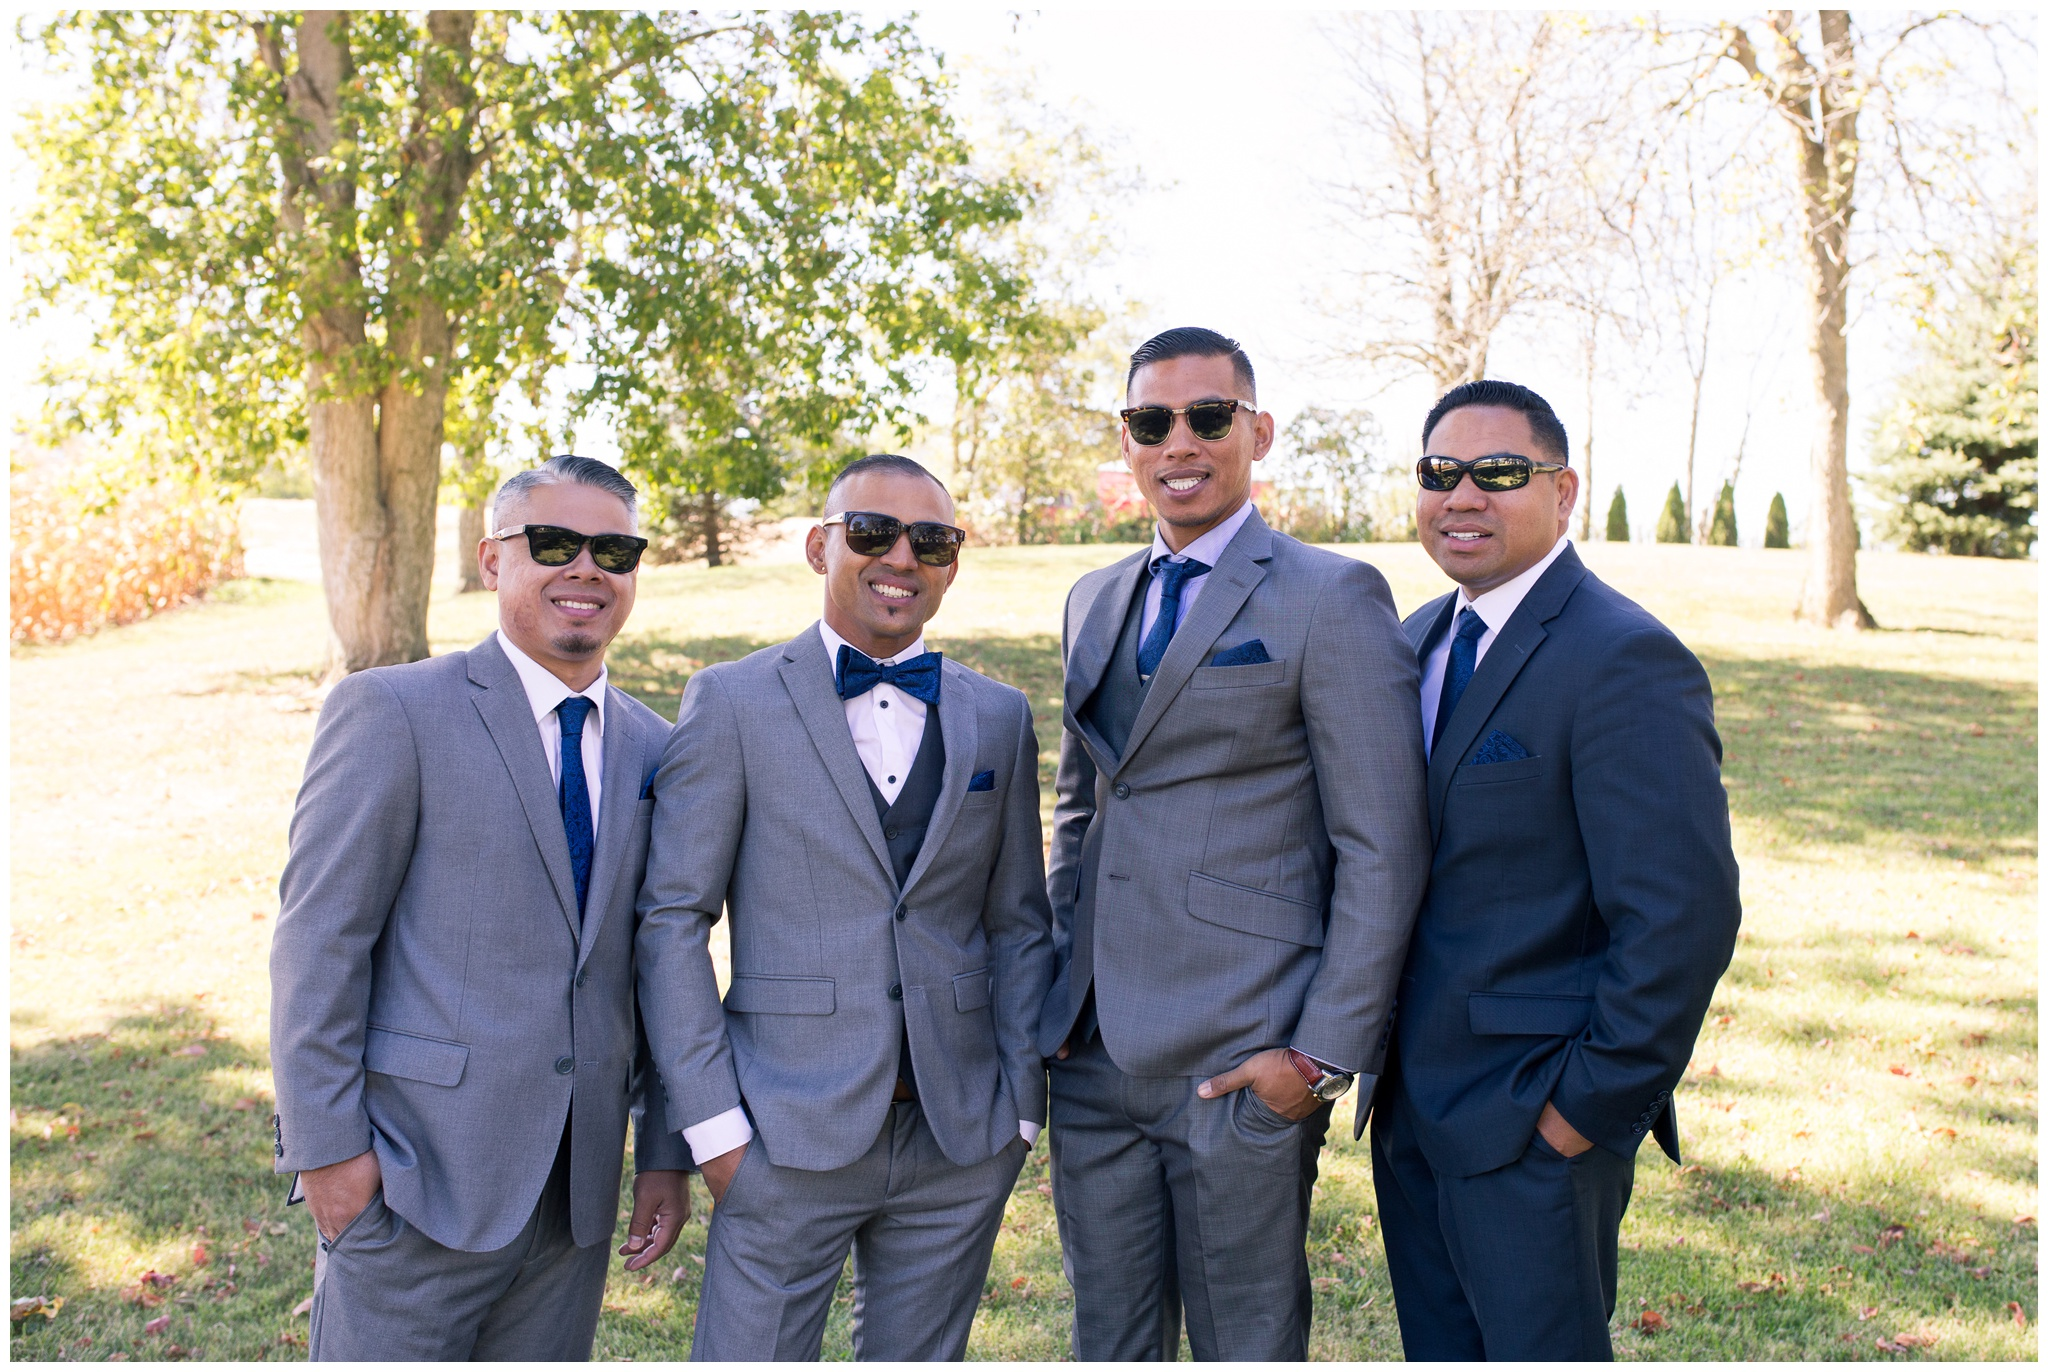 groom and groomsmen wearing sunglasses before wedding ceremony in Greenville Ohio